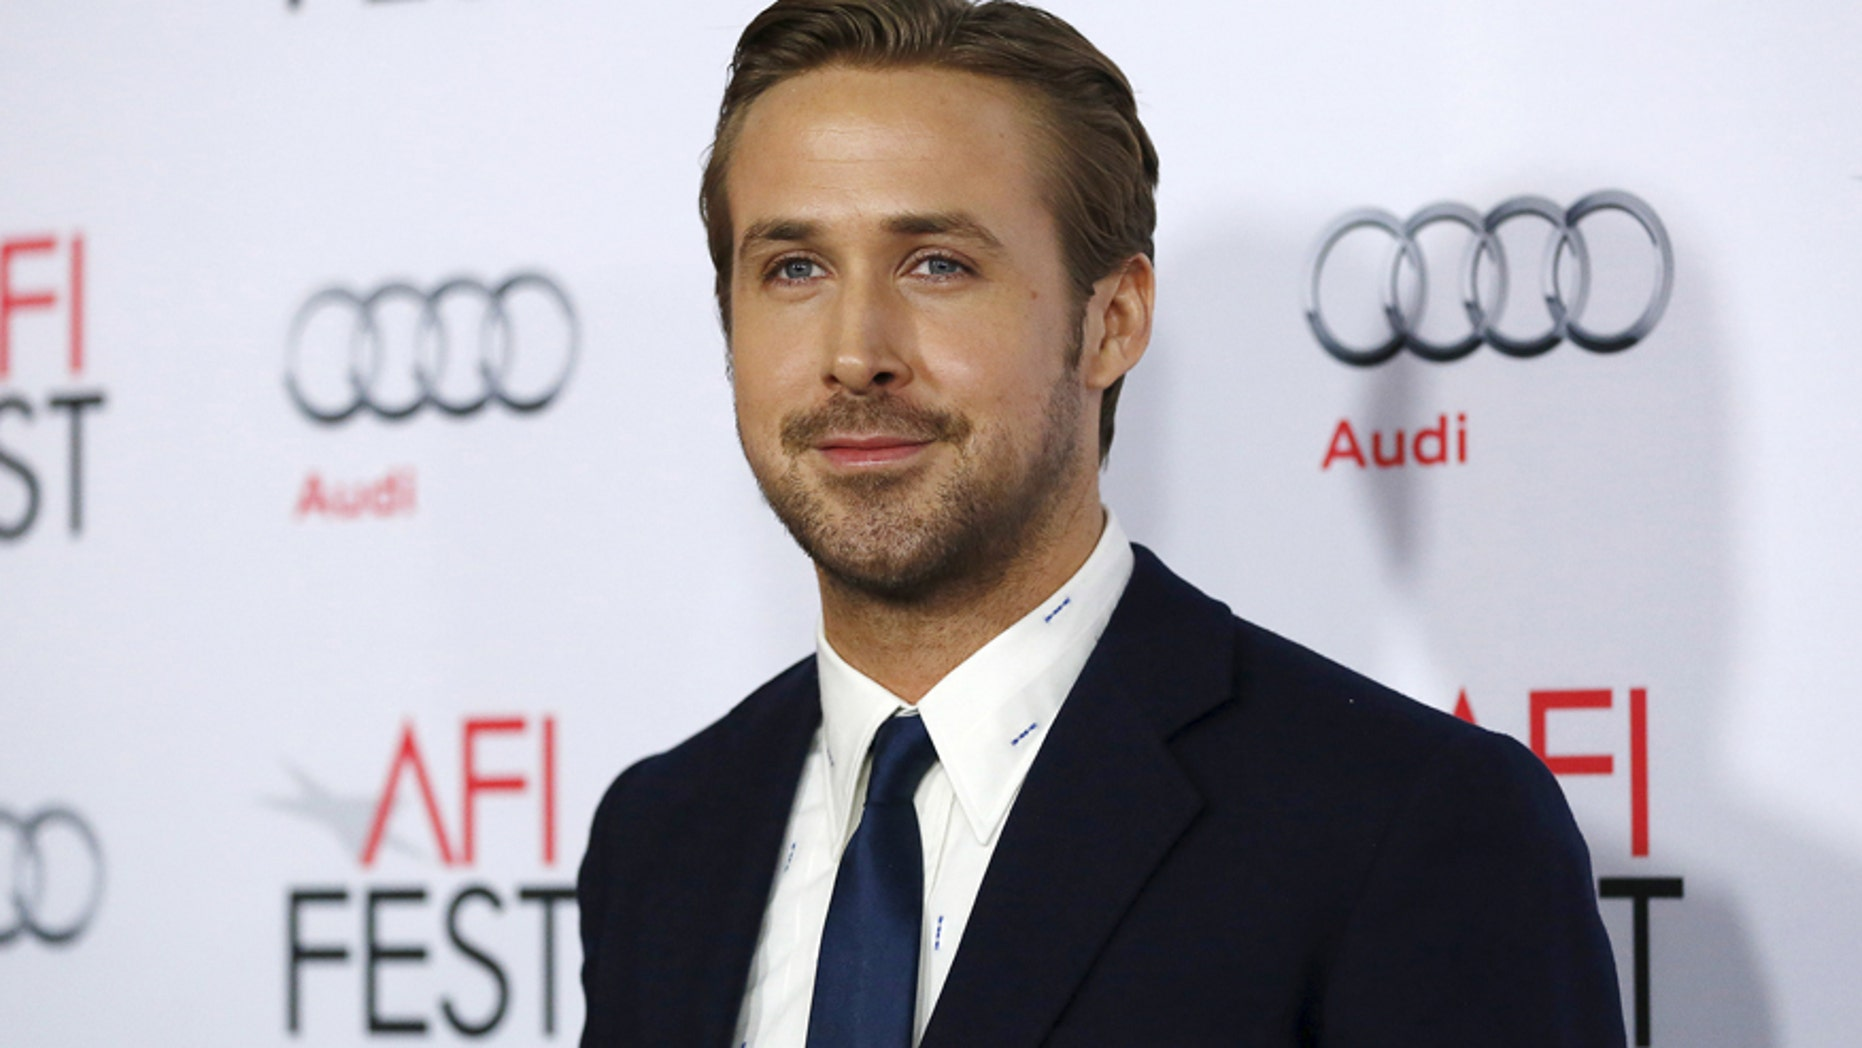 """Cast member Ryan Gosling poses at the premiere of """"The Big Short"""" during the closing night of AFI Fest 2015 in Hollywood, California November 12, 2015."""